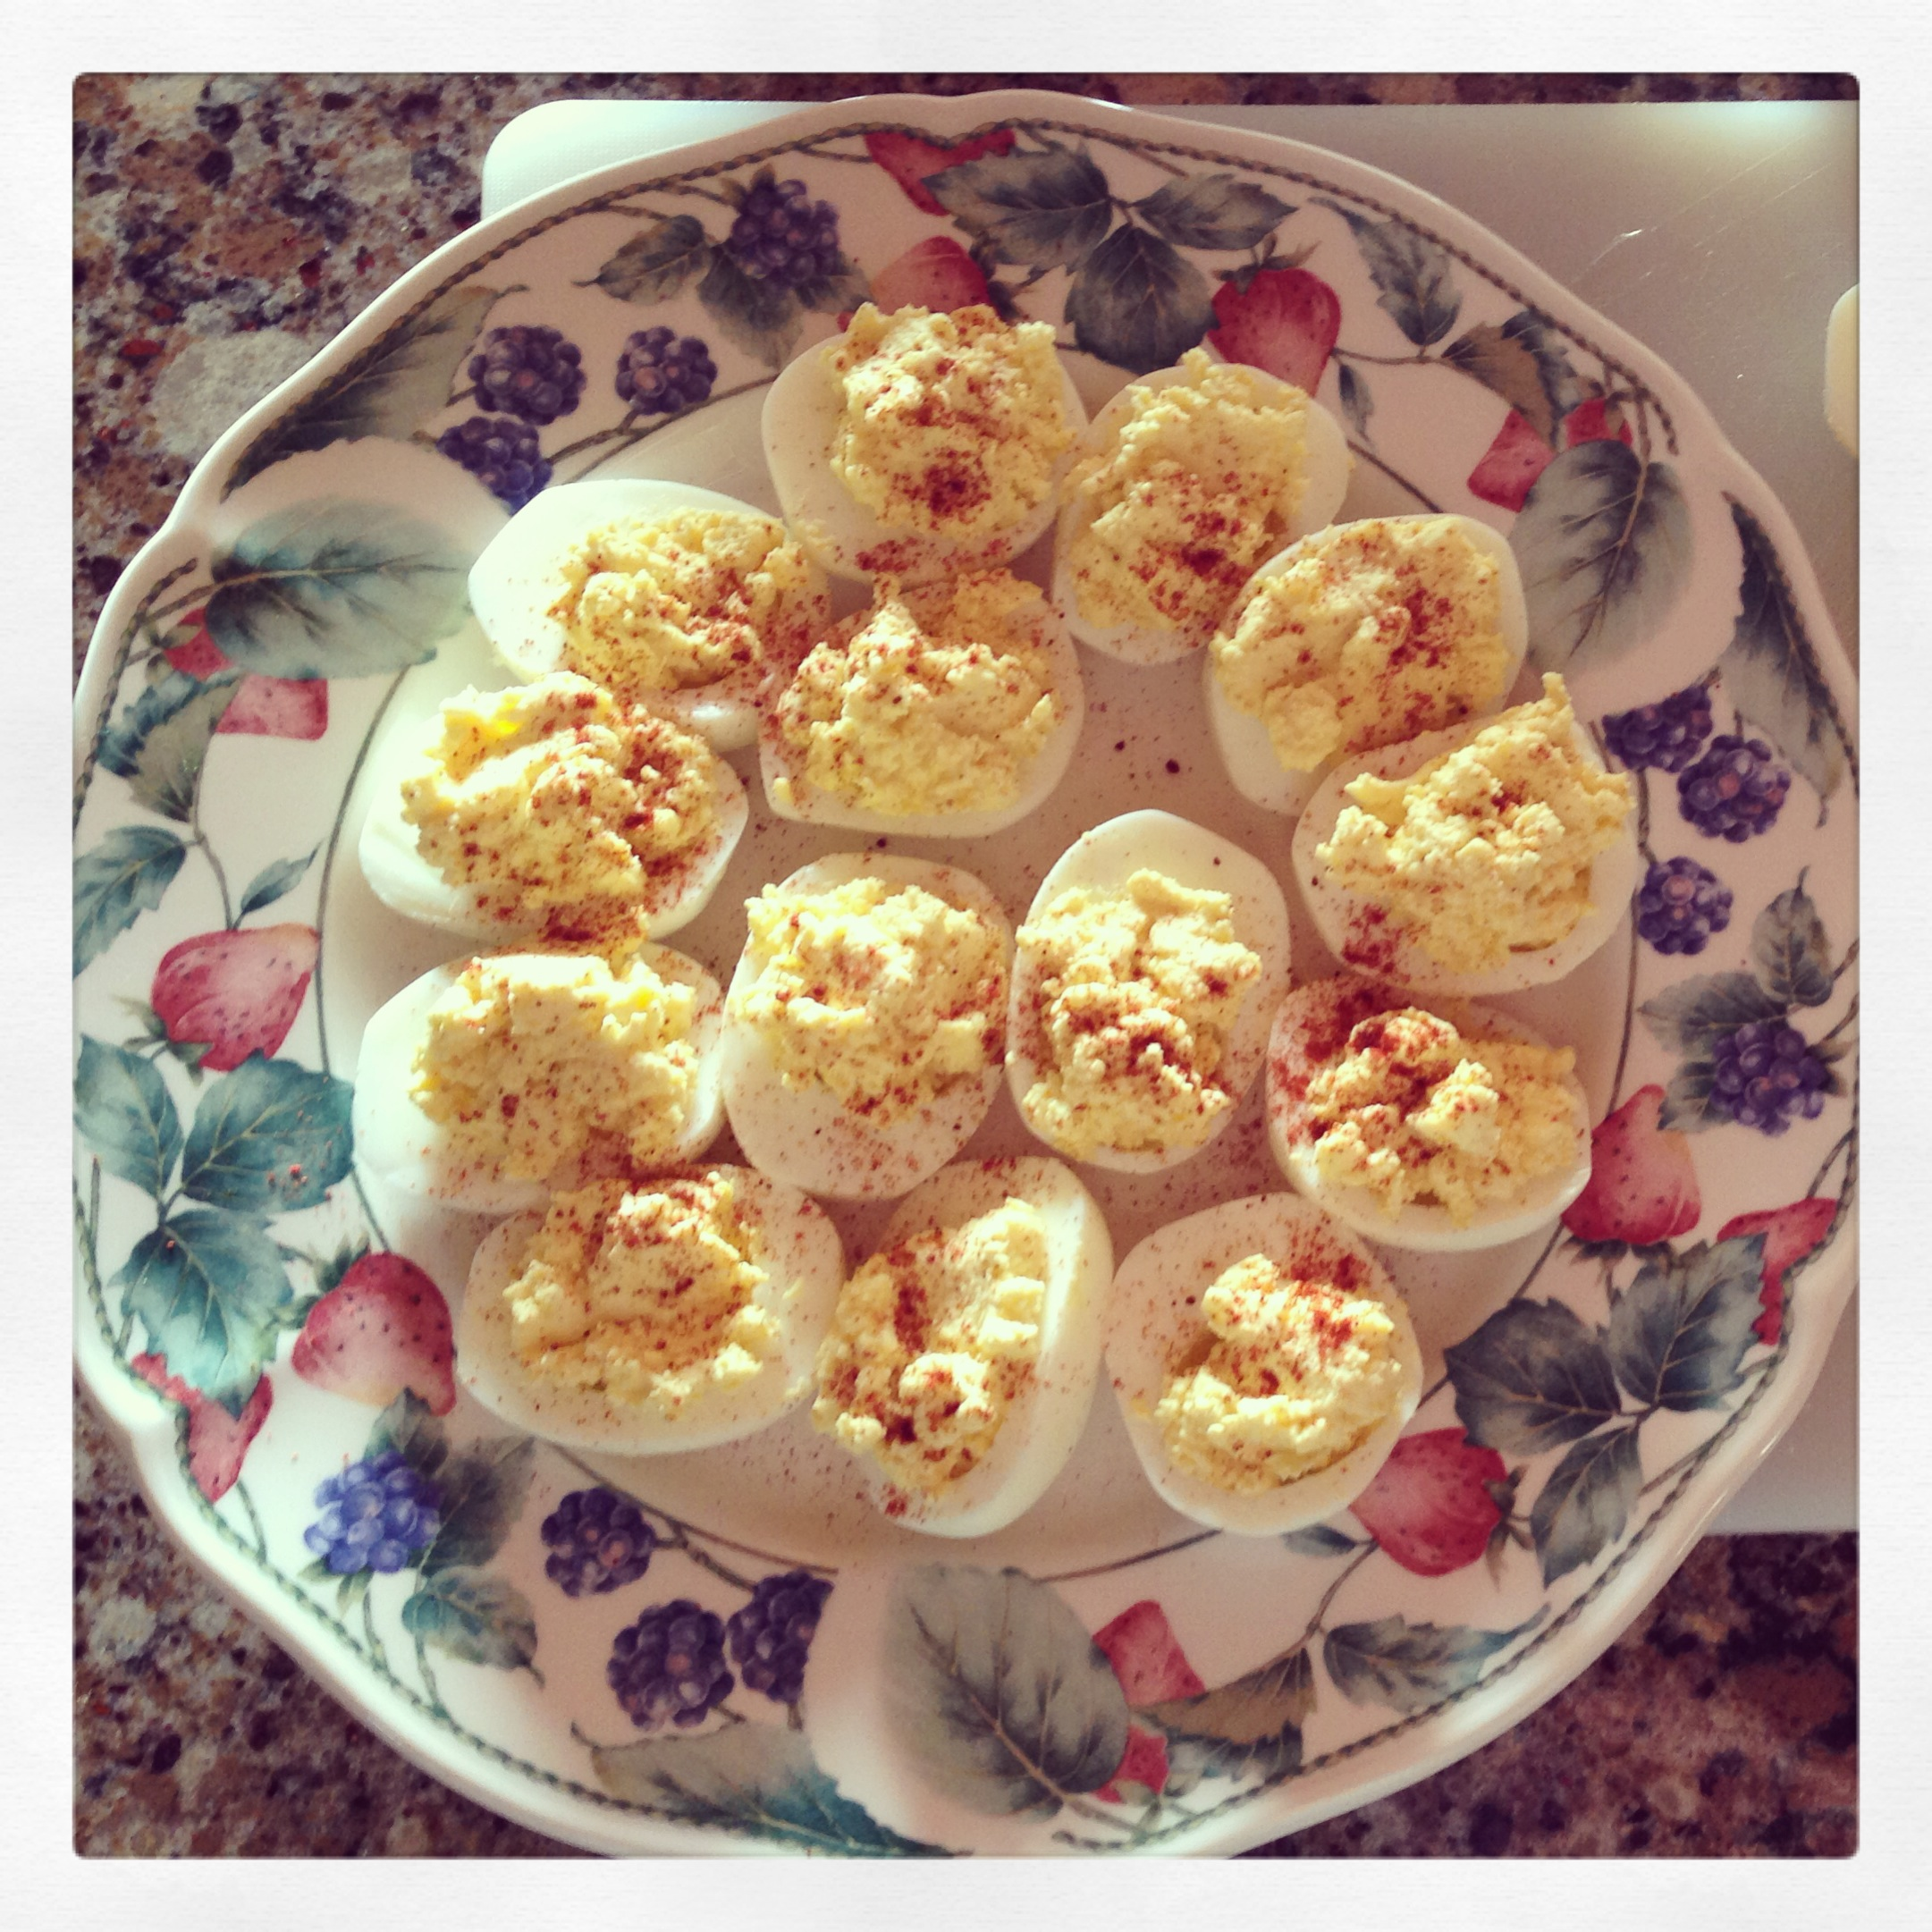 Starbucks deviled eggs finished product